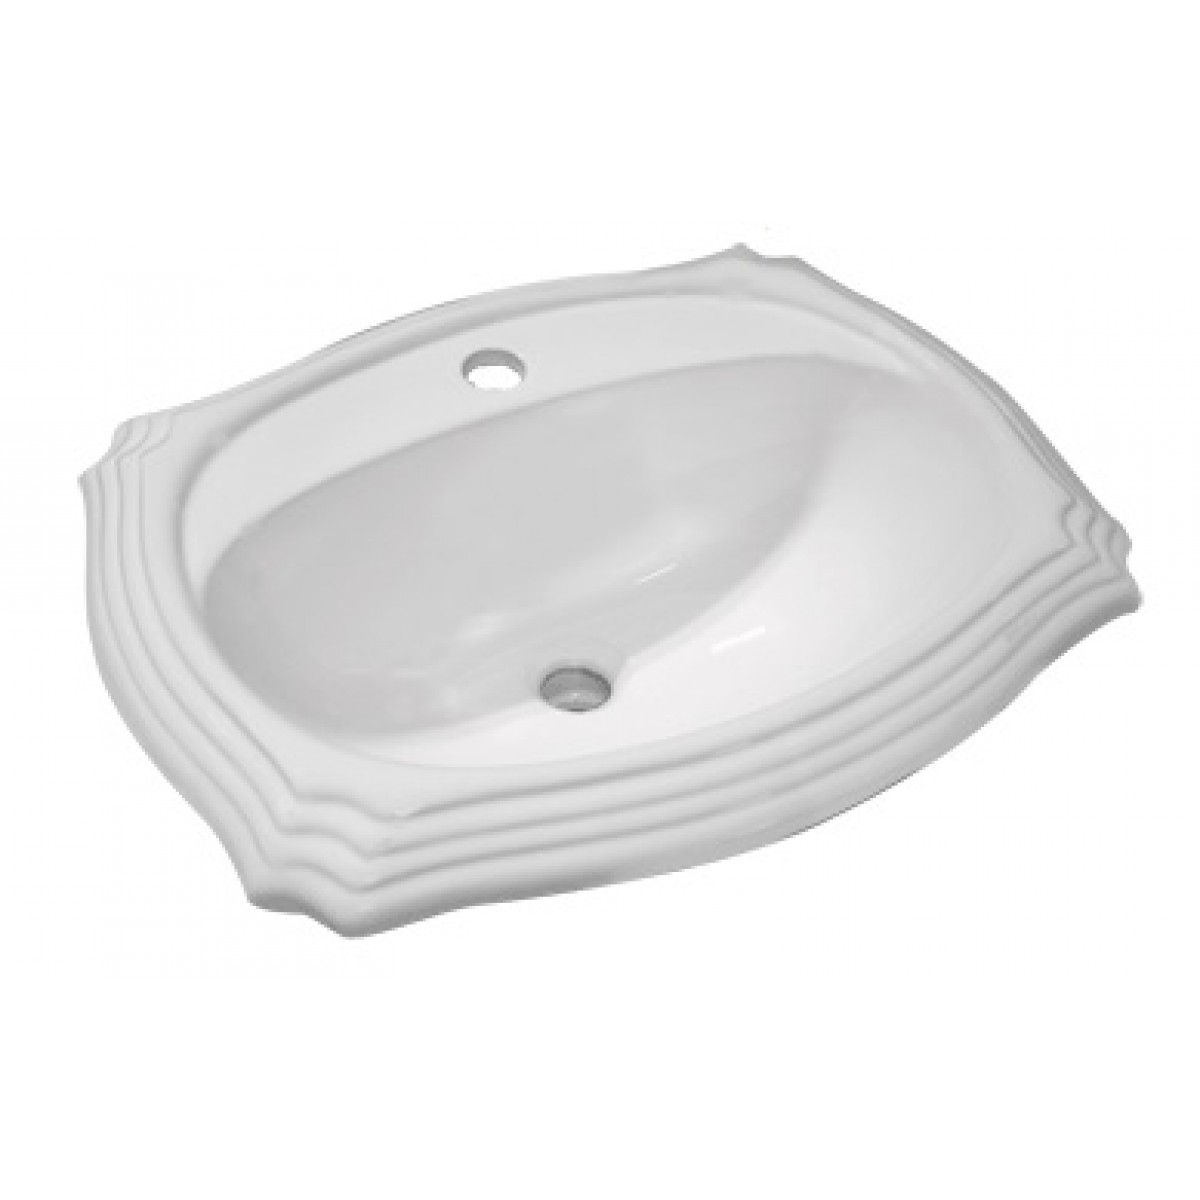 Porcelain Ceramic Vanity Drop In Bathroom Vessel Sink 17 1 2 X 15 X 7 1 2 Inch